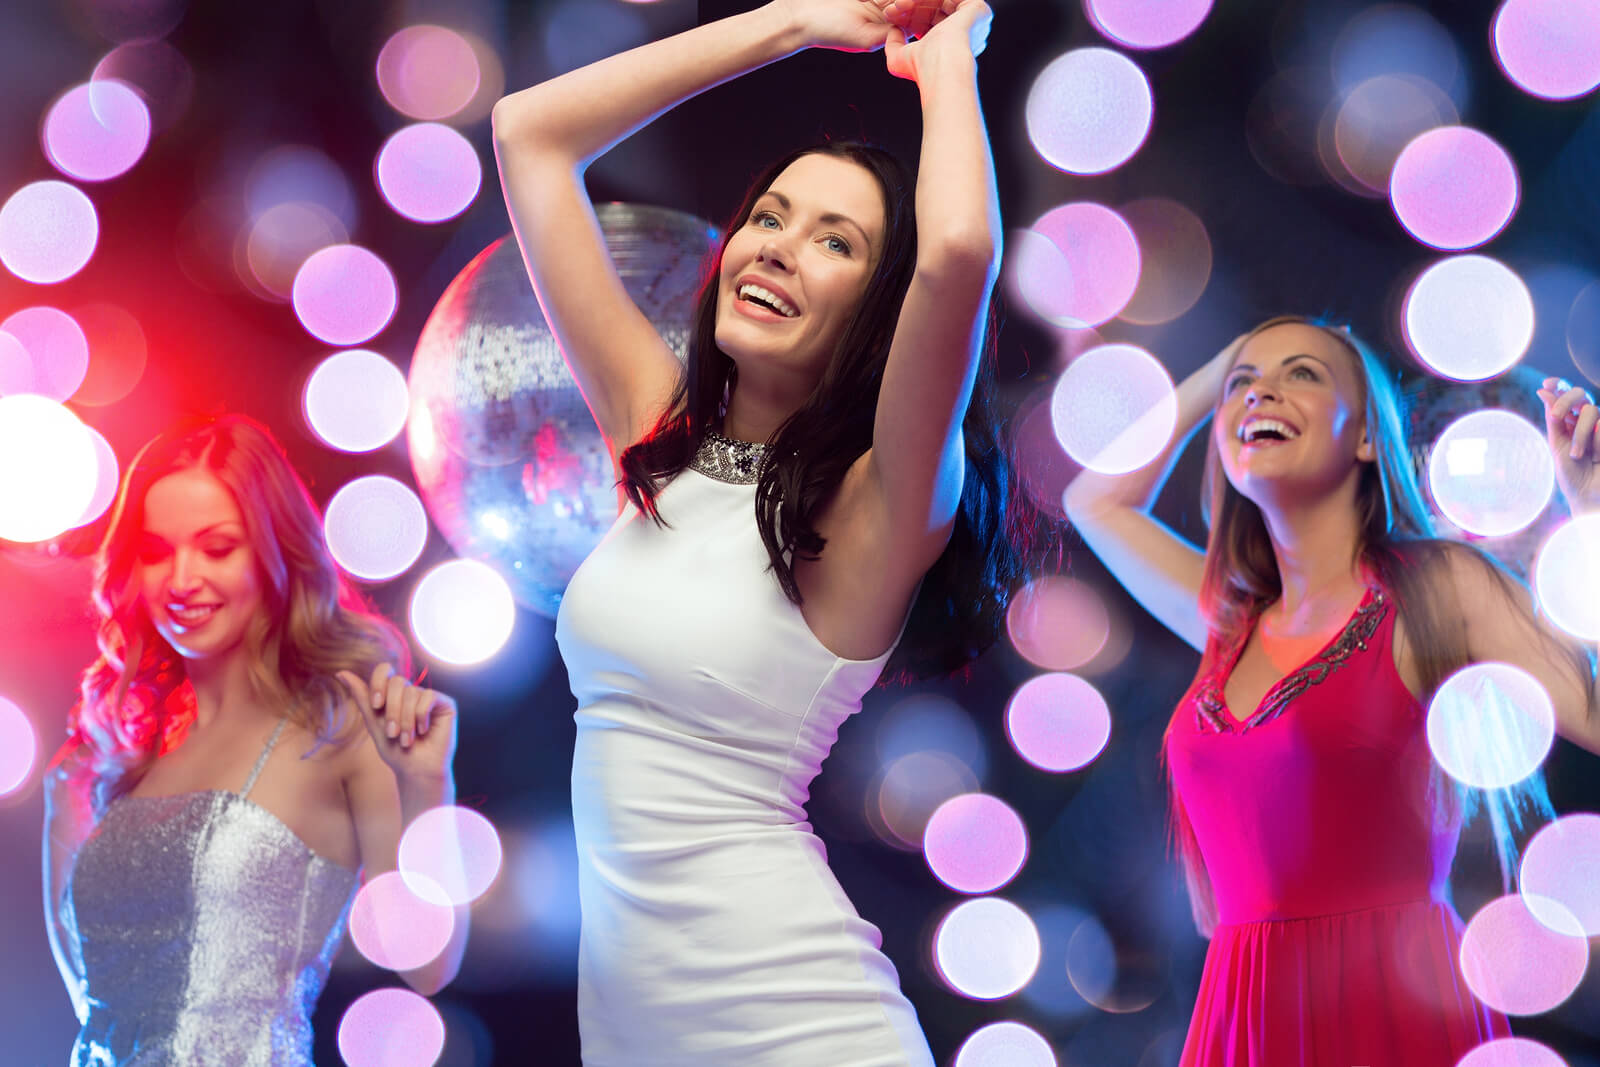 speeddaten leuven Free online dating and matchmaking service for singles 3,000,000 daily active online dating users.